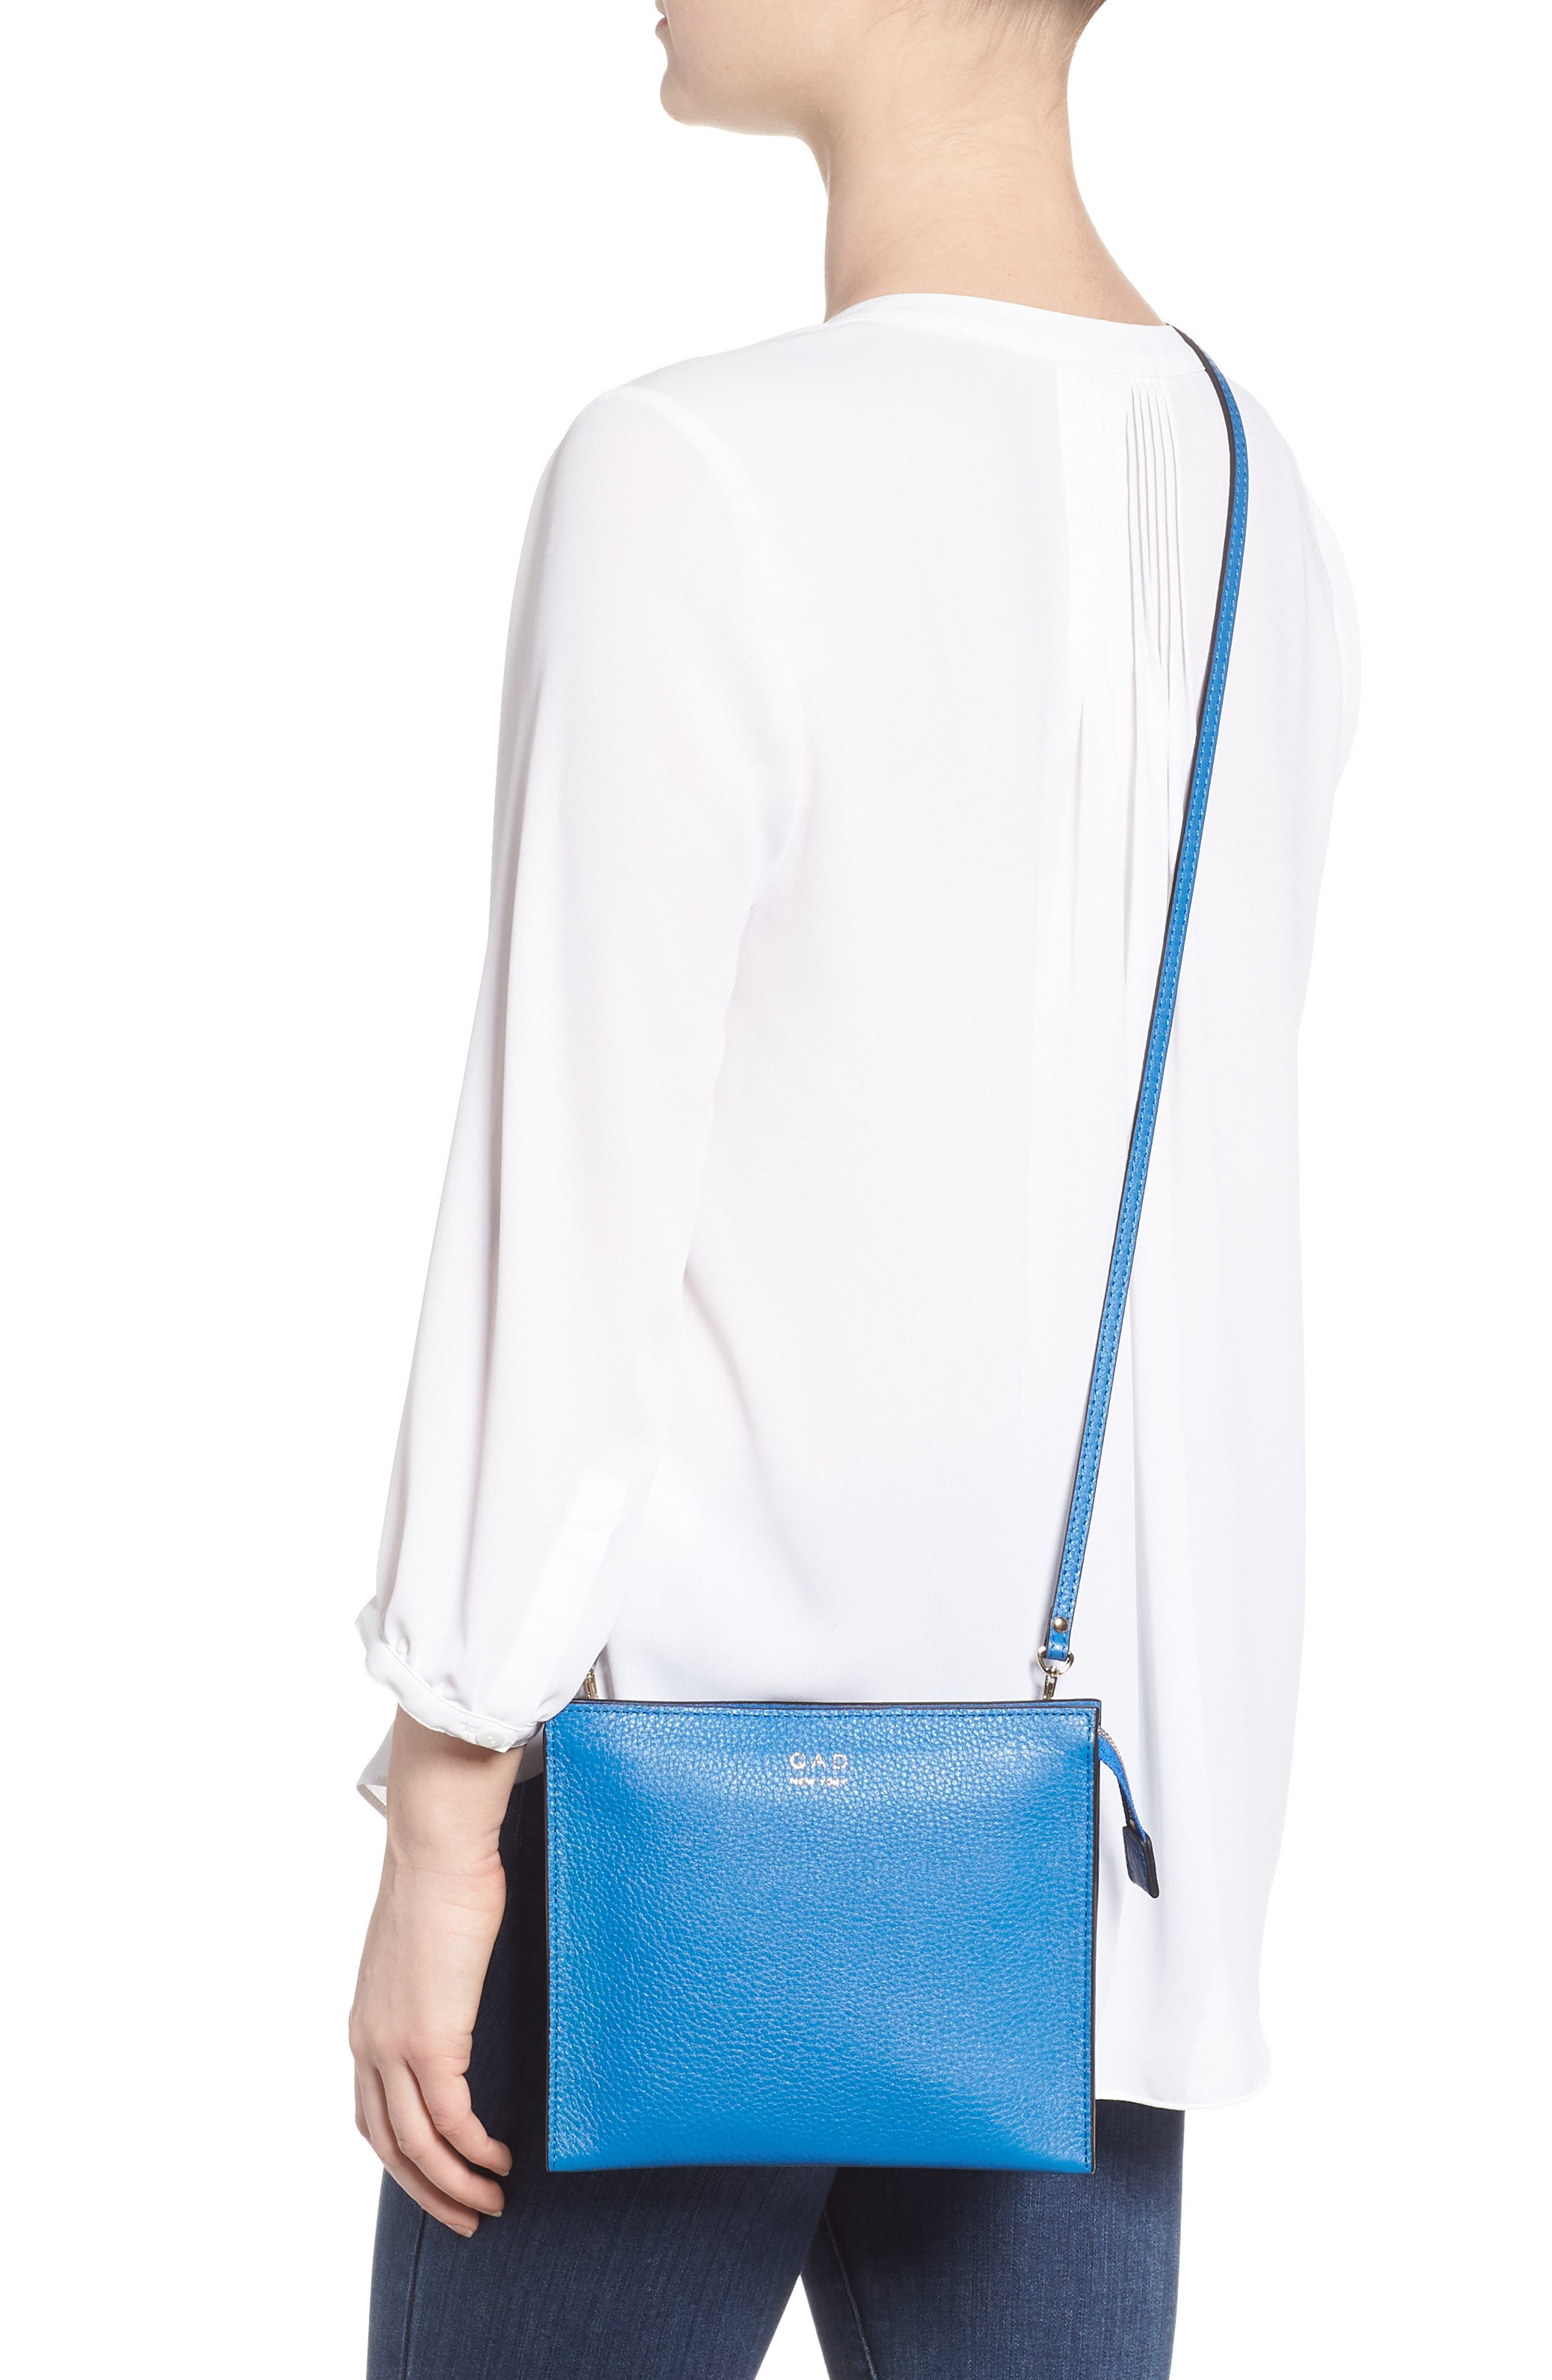 Dual Slim Leather Crossbody Clutch,                             Alternate thumbnail 2, color,                             Sea Blue